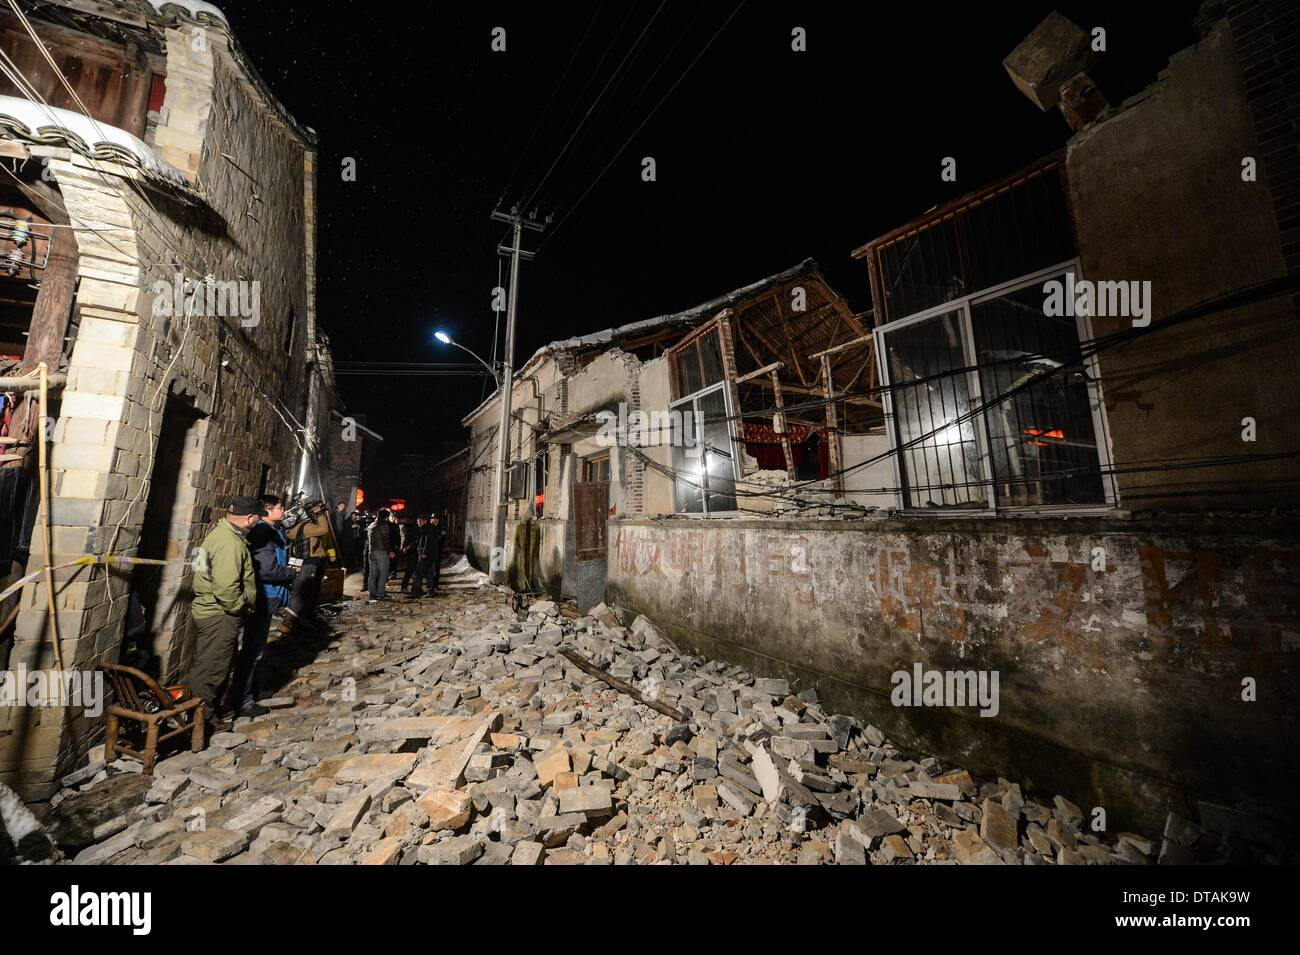 (140214) -- PAN'AN, Feb. 14, 2014 (Xinhua) -- Photo taken on Feb. 13, 2014 shows the ruins of a collapsed building, Stock Photo